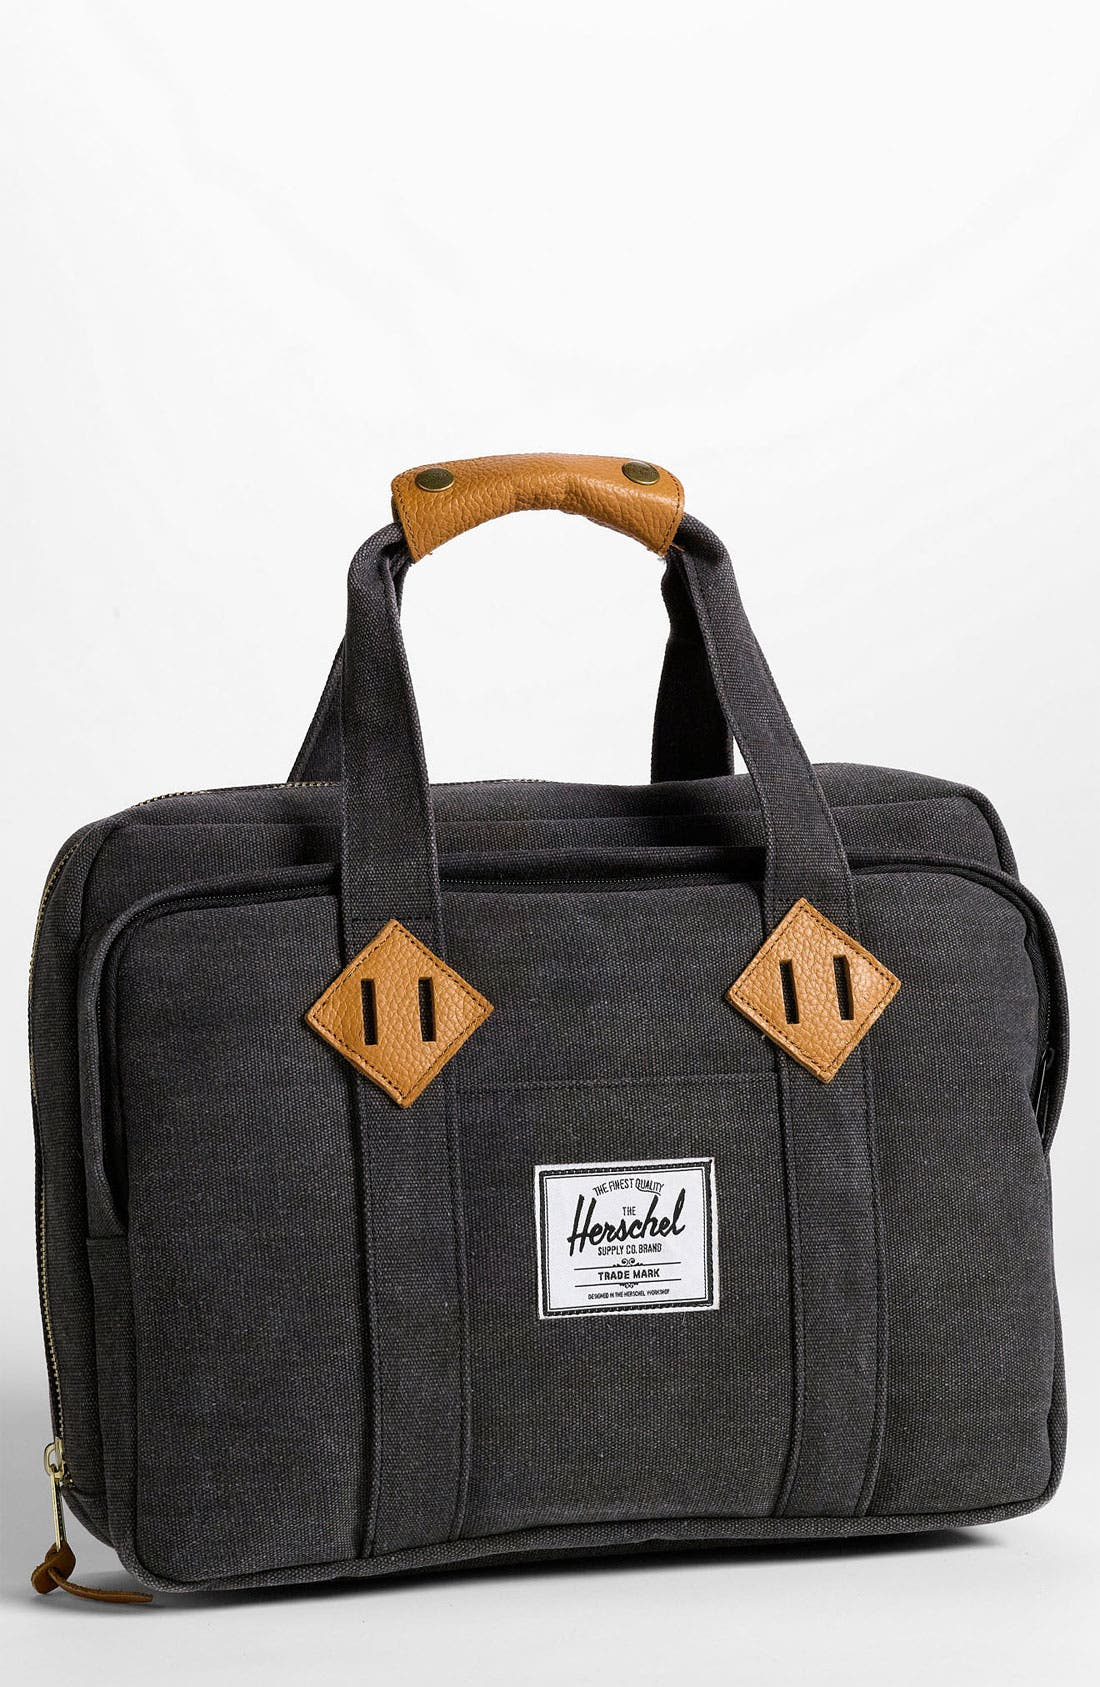 Alternate Image 1 Selected - Herschel Supply Co. 'Oak' Cotton Canvas Laptop Briefcase